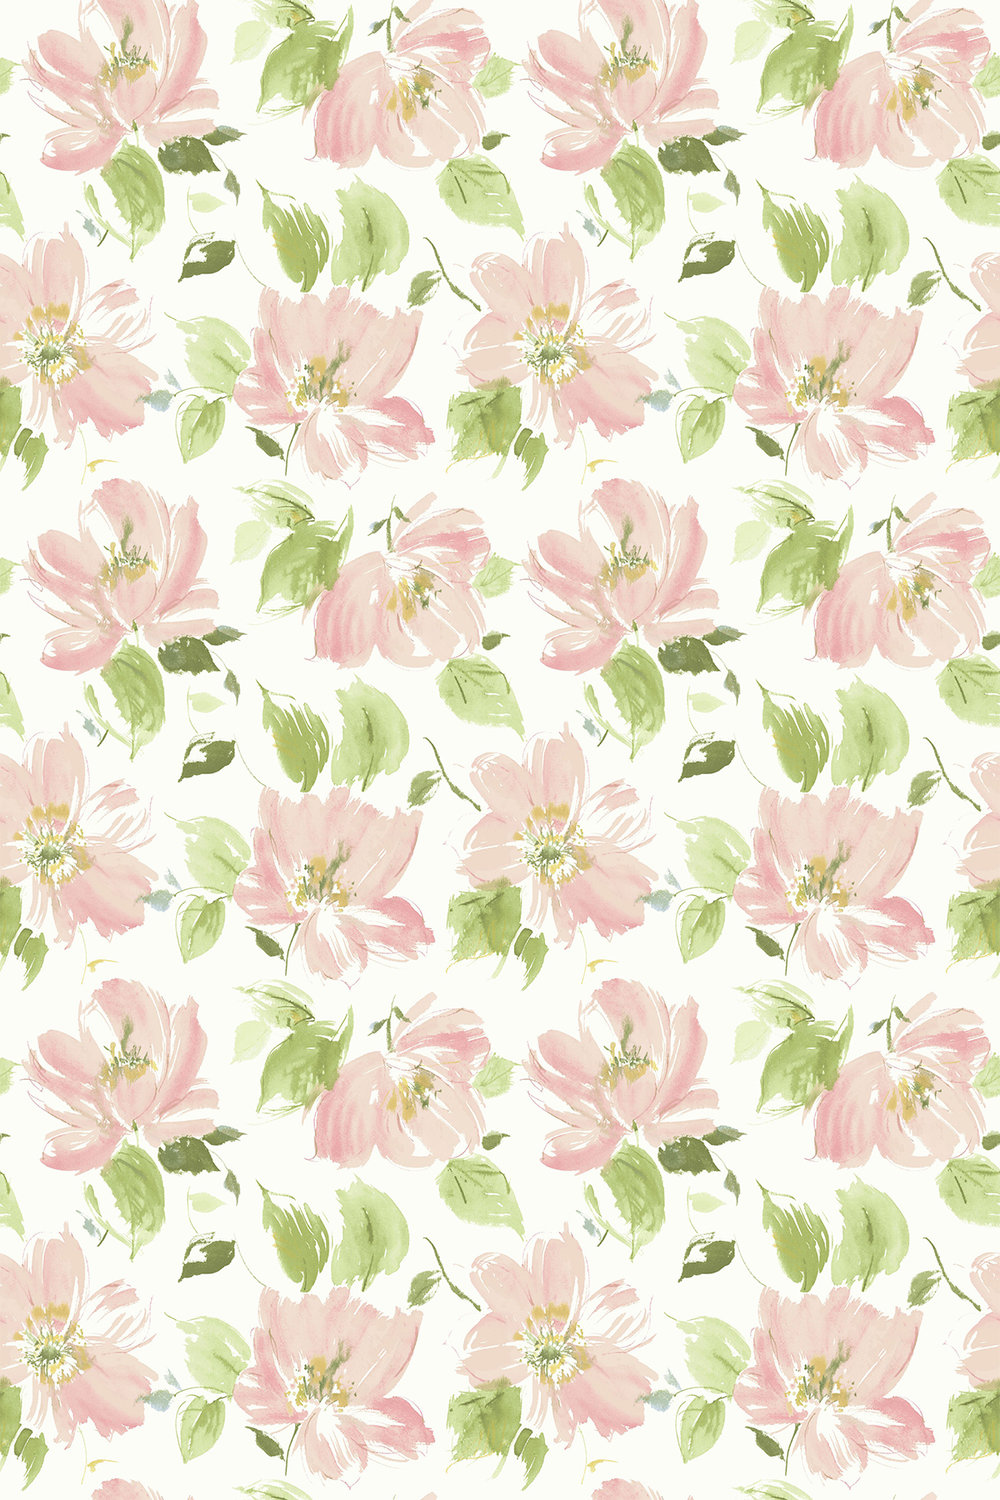 Blendworth Lillie Pink/ Ivory Fabric - Product code: LILLIE 1